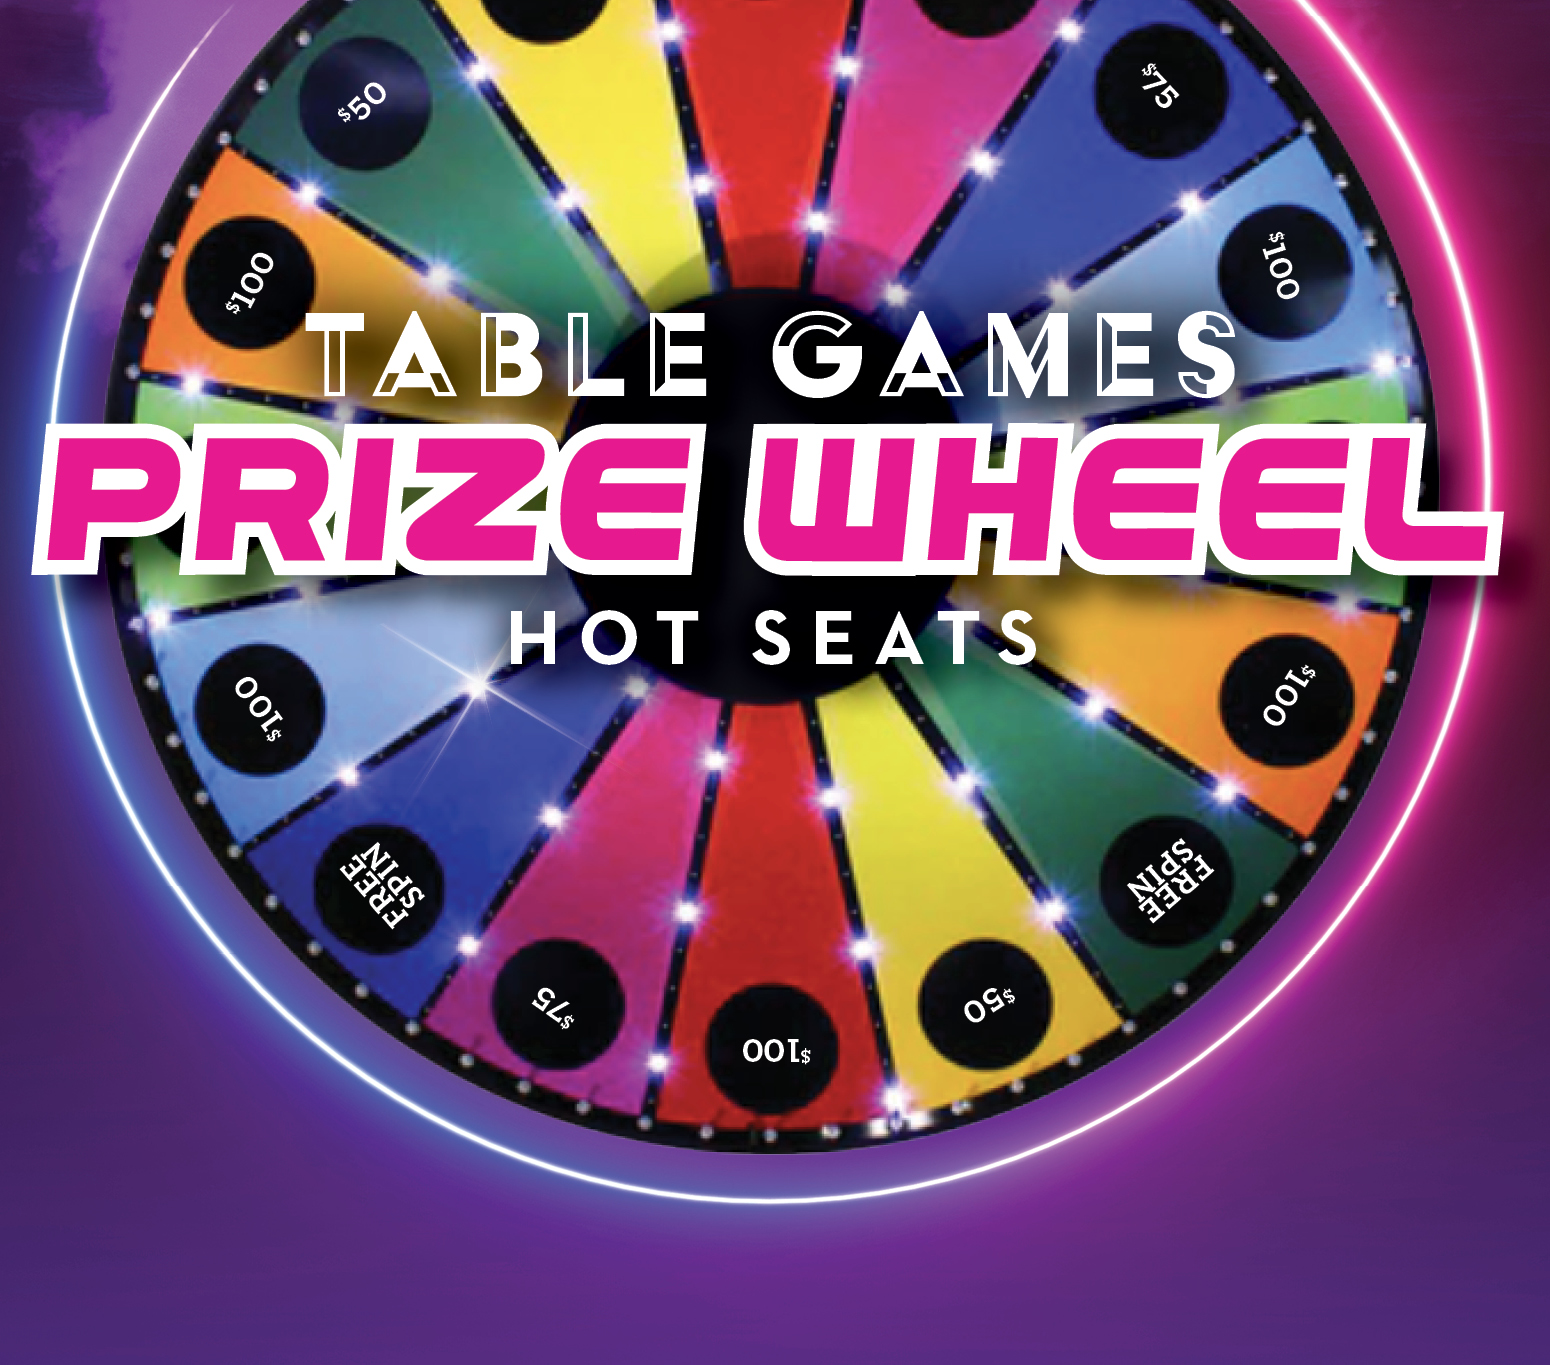 Table Games Prize Wheel Hot Seats